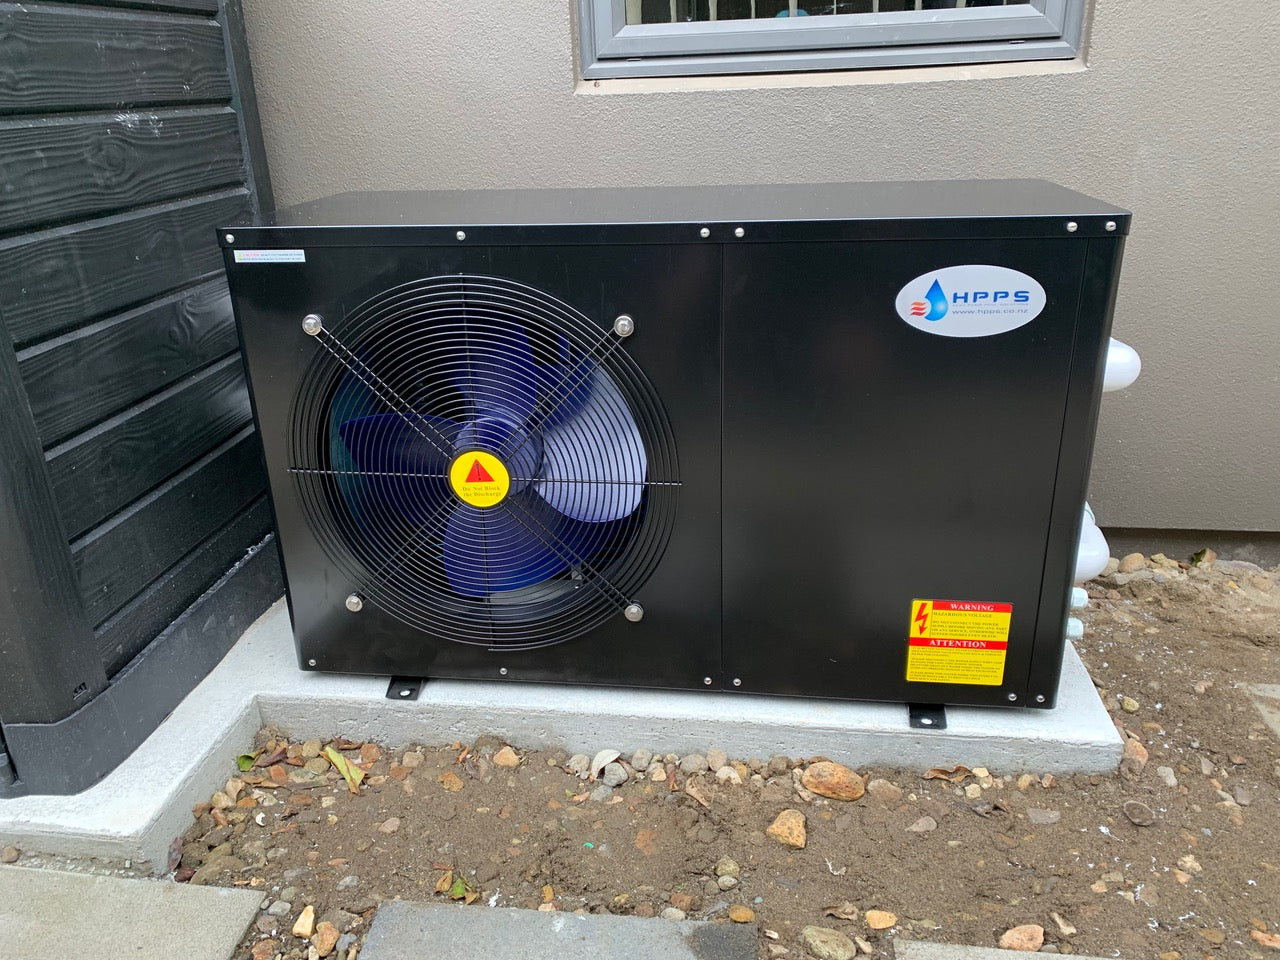 HPPS Heat pump - Side blowing stainless steel unit with black powder coat